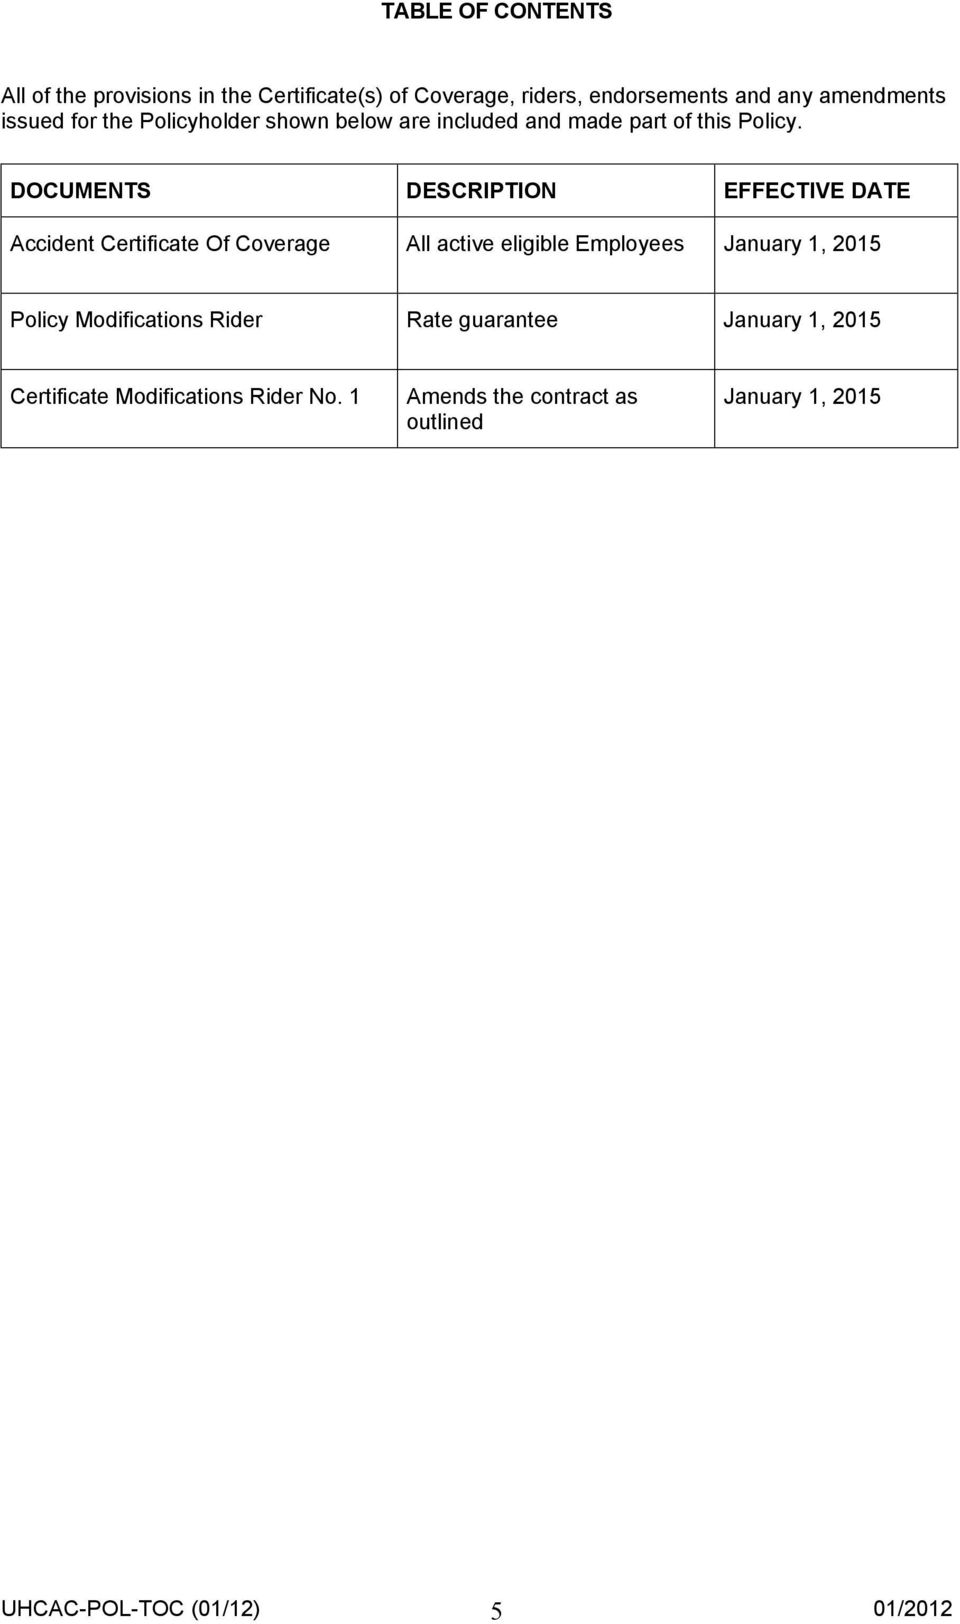 DOCUMENTS DESCRIPTION EFFECTIVE DATE Accident Certificate Of Coverage All active eligible Employees January 1, 2015 Policy